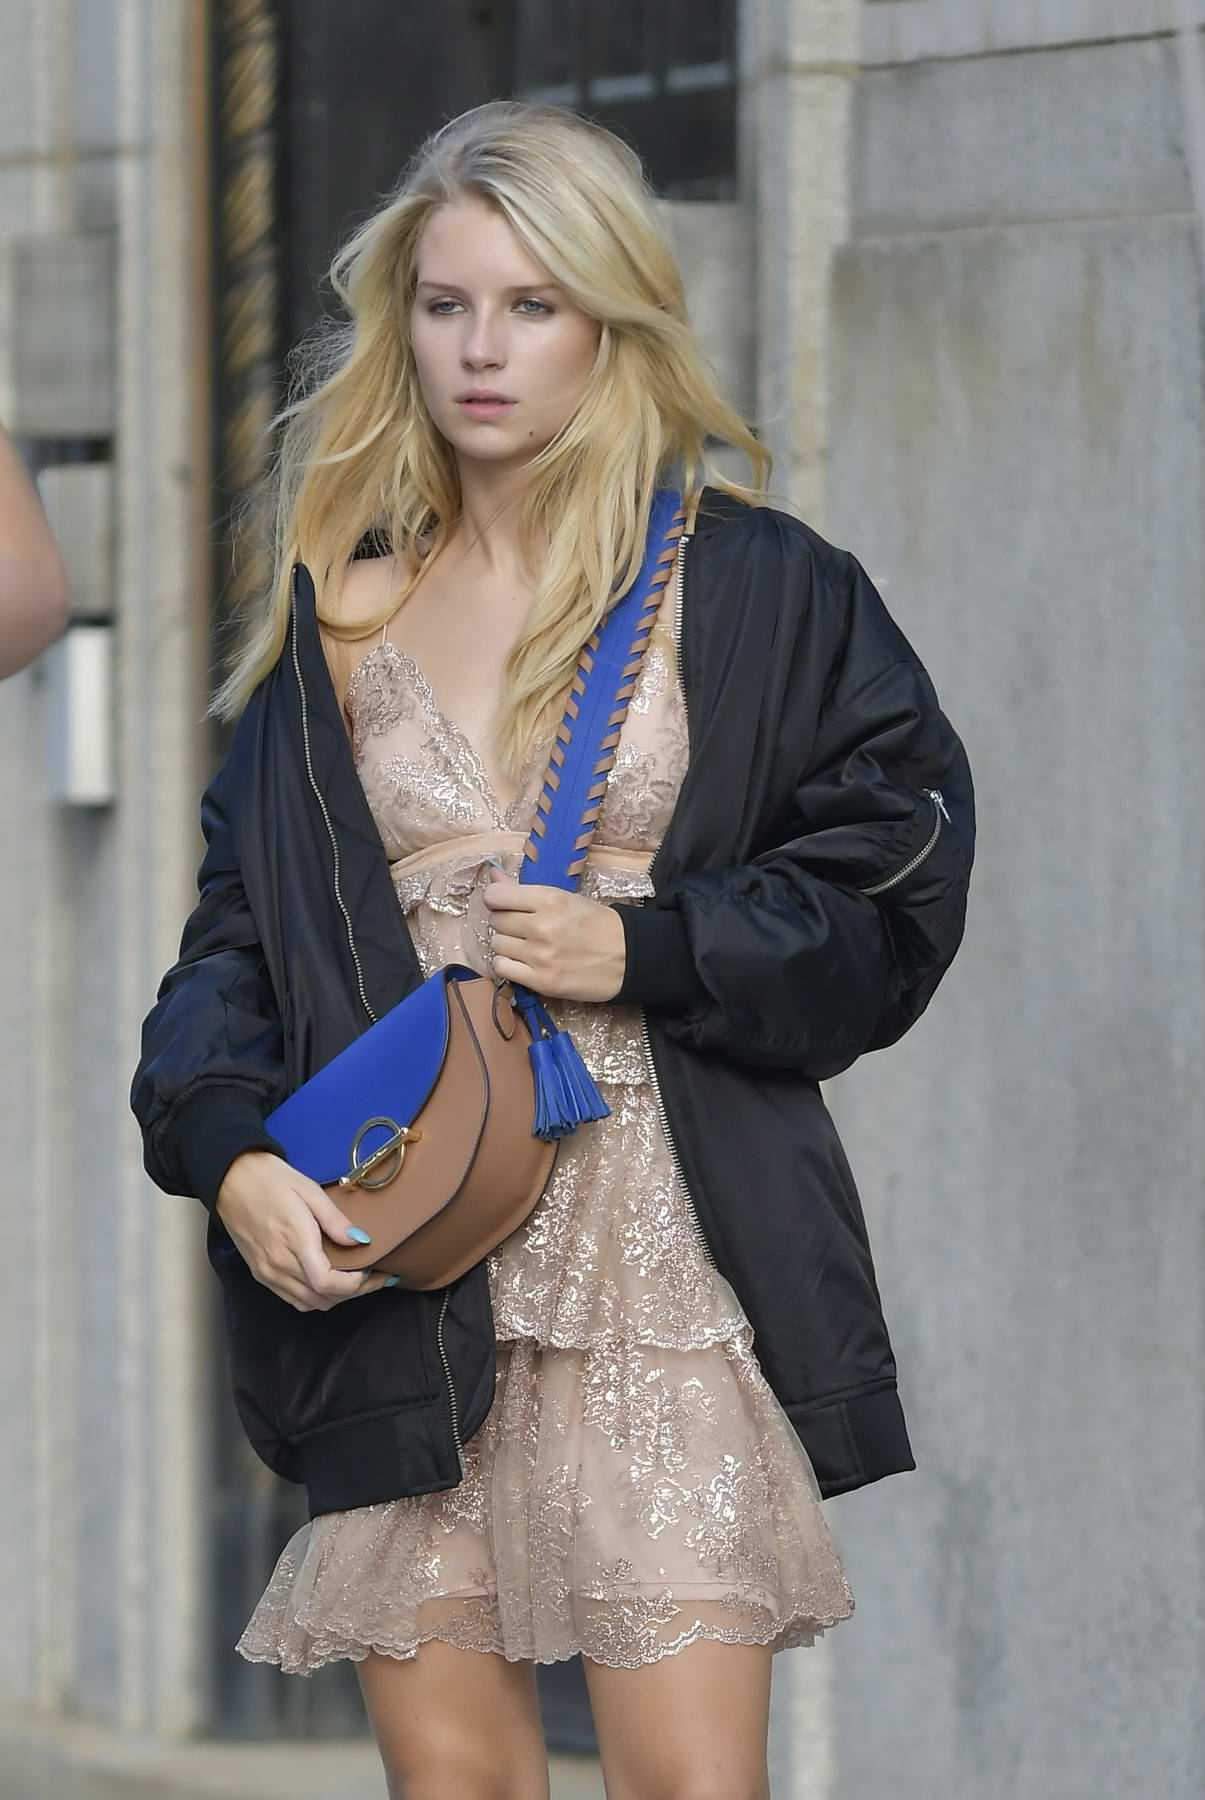 Lottie Moss on the Set of a Photoshoot for Samantha Thavasa Bags in New York